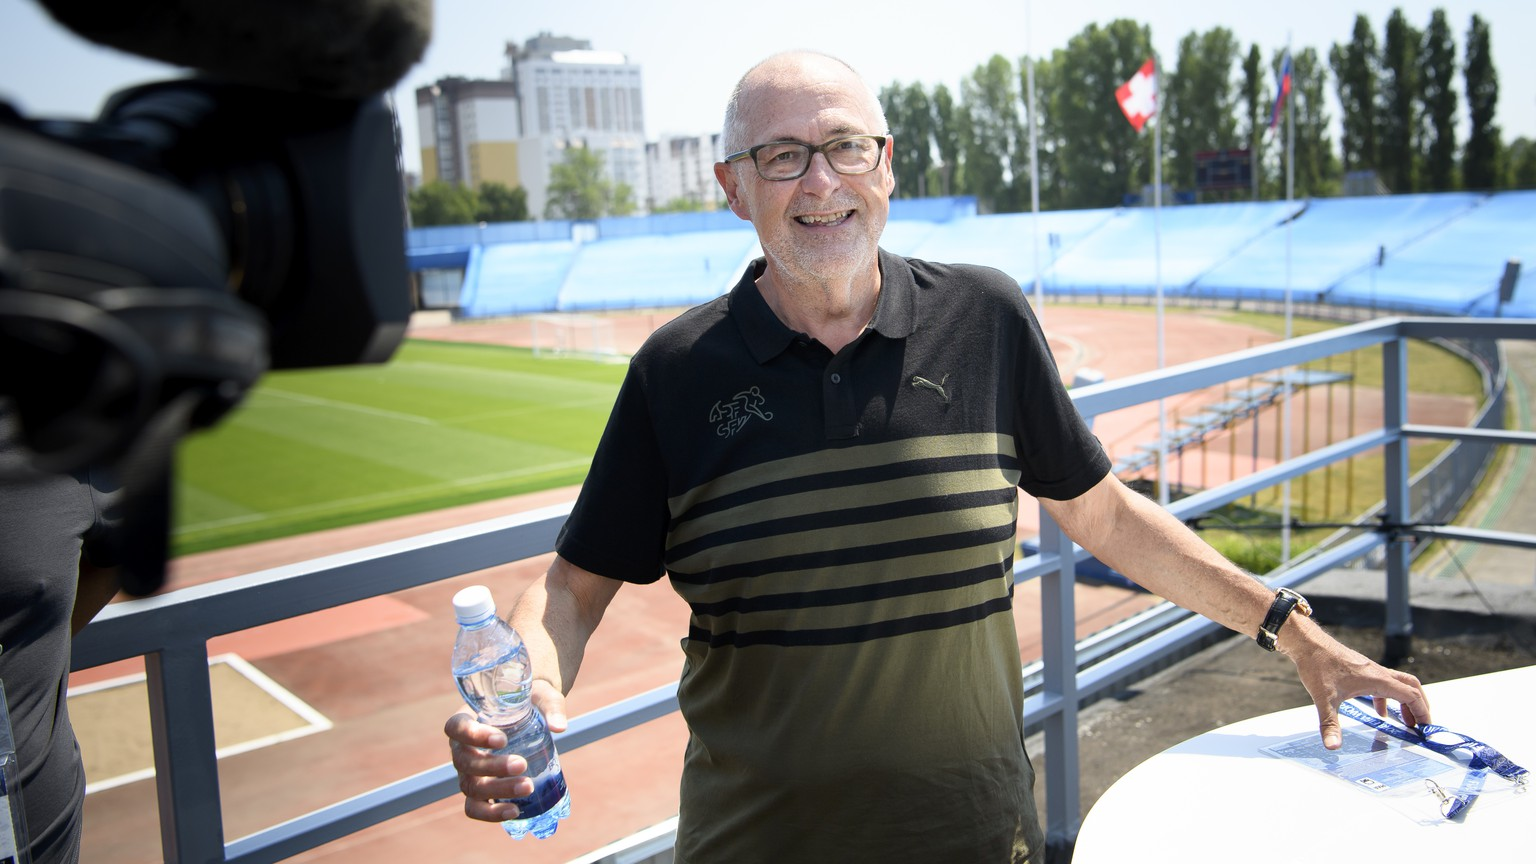 Peter Gillieron, President of the Swiss Football Association, SFV, answers questions from TV journalist before a press conference of the Switzerland's national soccer team at the Torpedo Stadium, in Togliatti, Russia, Sunday, June 24, 2018. The Swiss team is in Russia for the FIFA World Cup 2018 taking place from 14 June until 15 July 2018. Team Switzerland is based in Togliatti in the Samara district. (KEYSTONE/Laurent Gillieron)